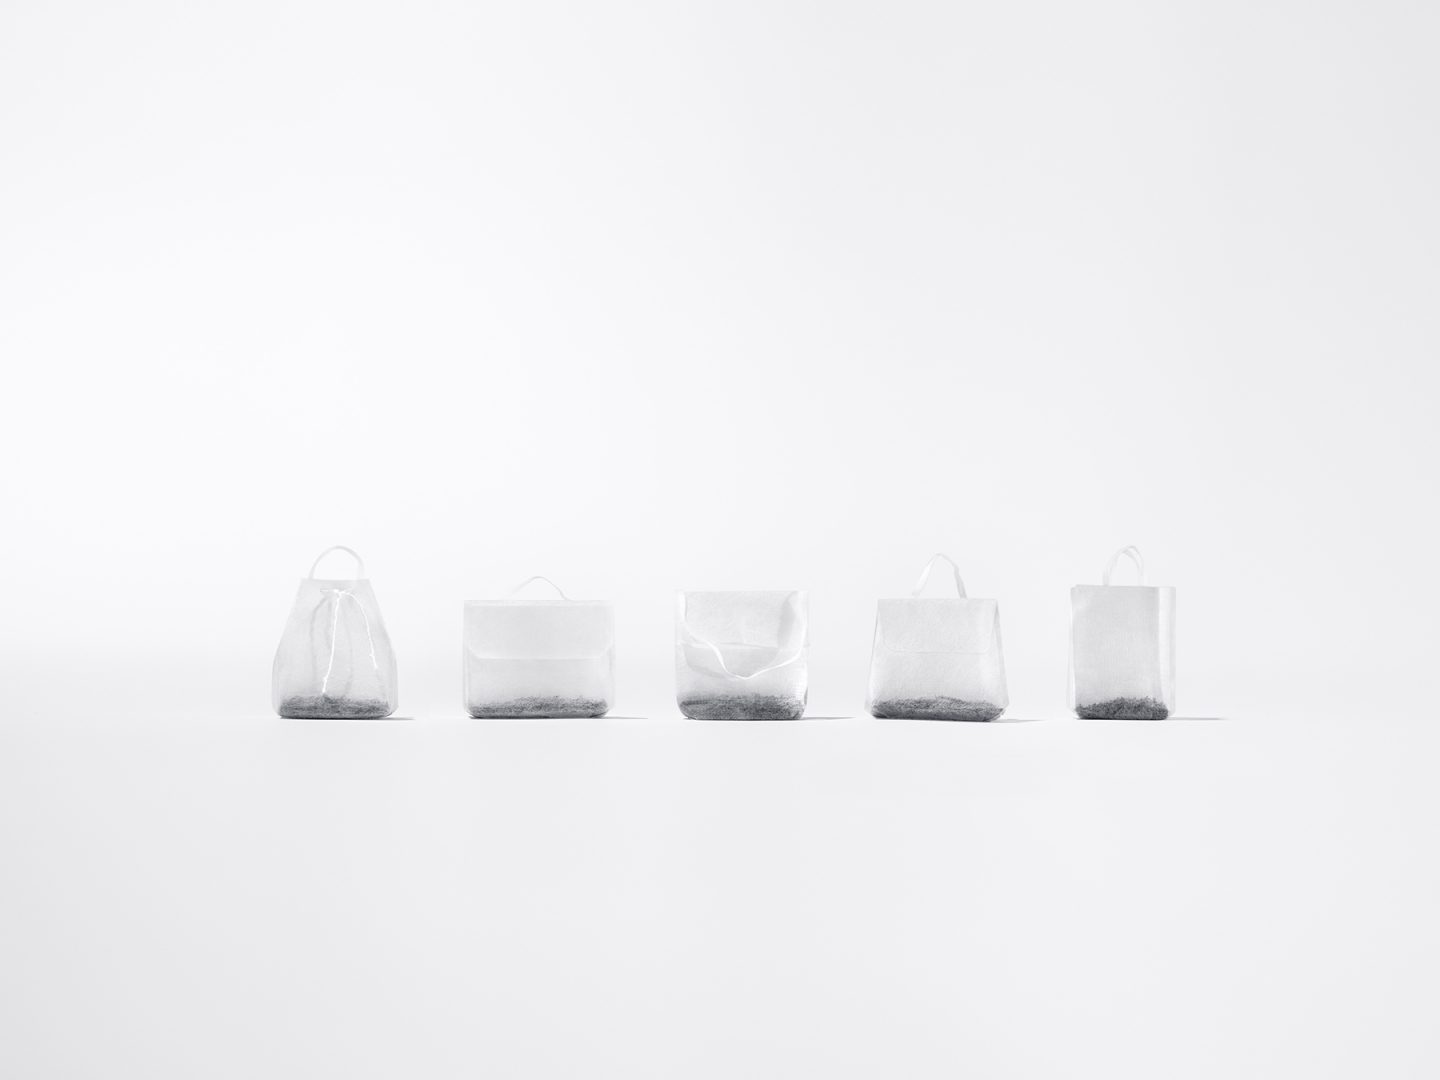 iGNANT-Design-Halssen-&-Lyon-Ayzit-Bostan-The-Teabag-Collection-02